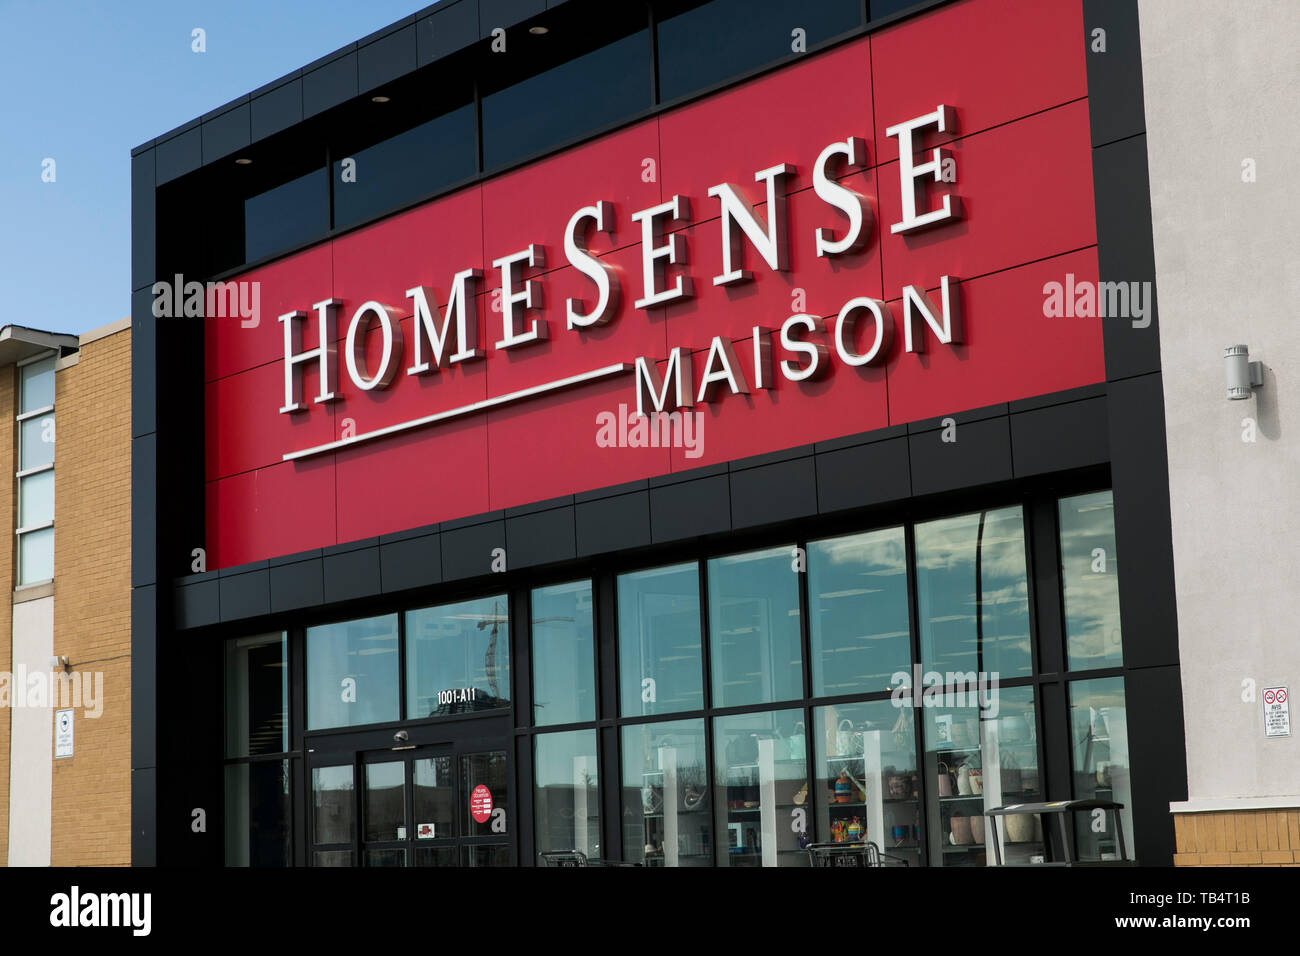 A logo sign outside of a HomeSense retail store location in